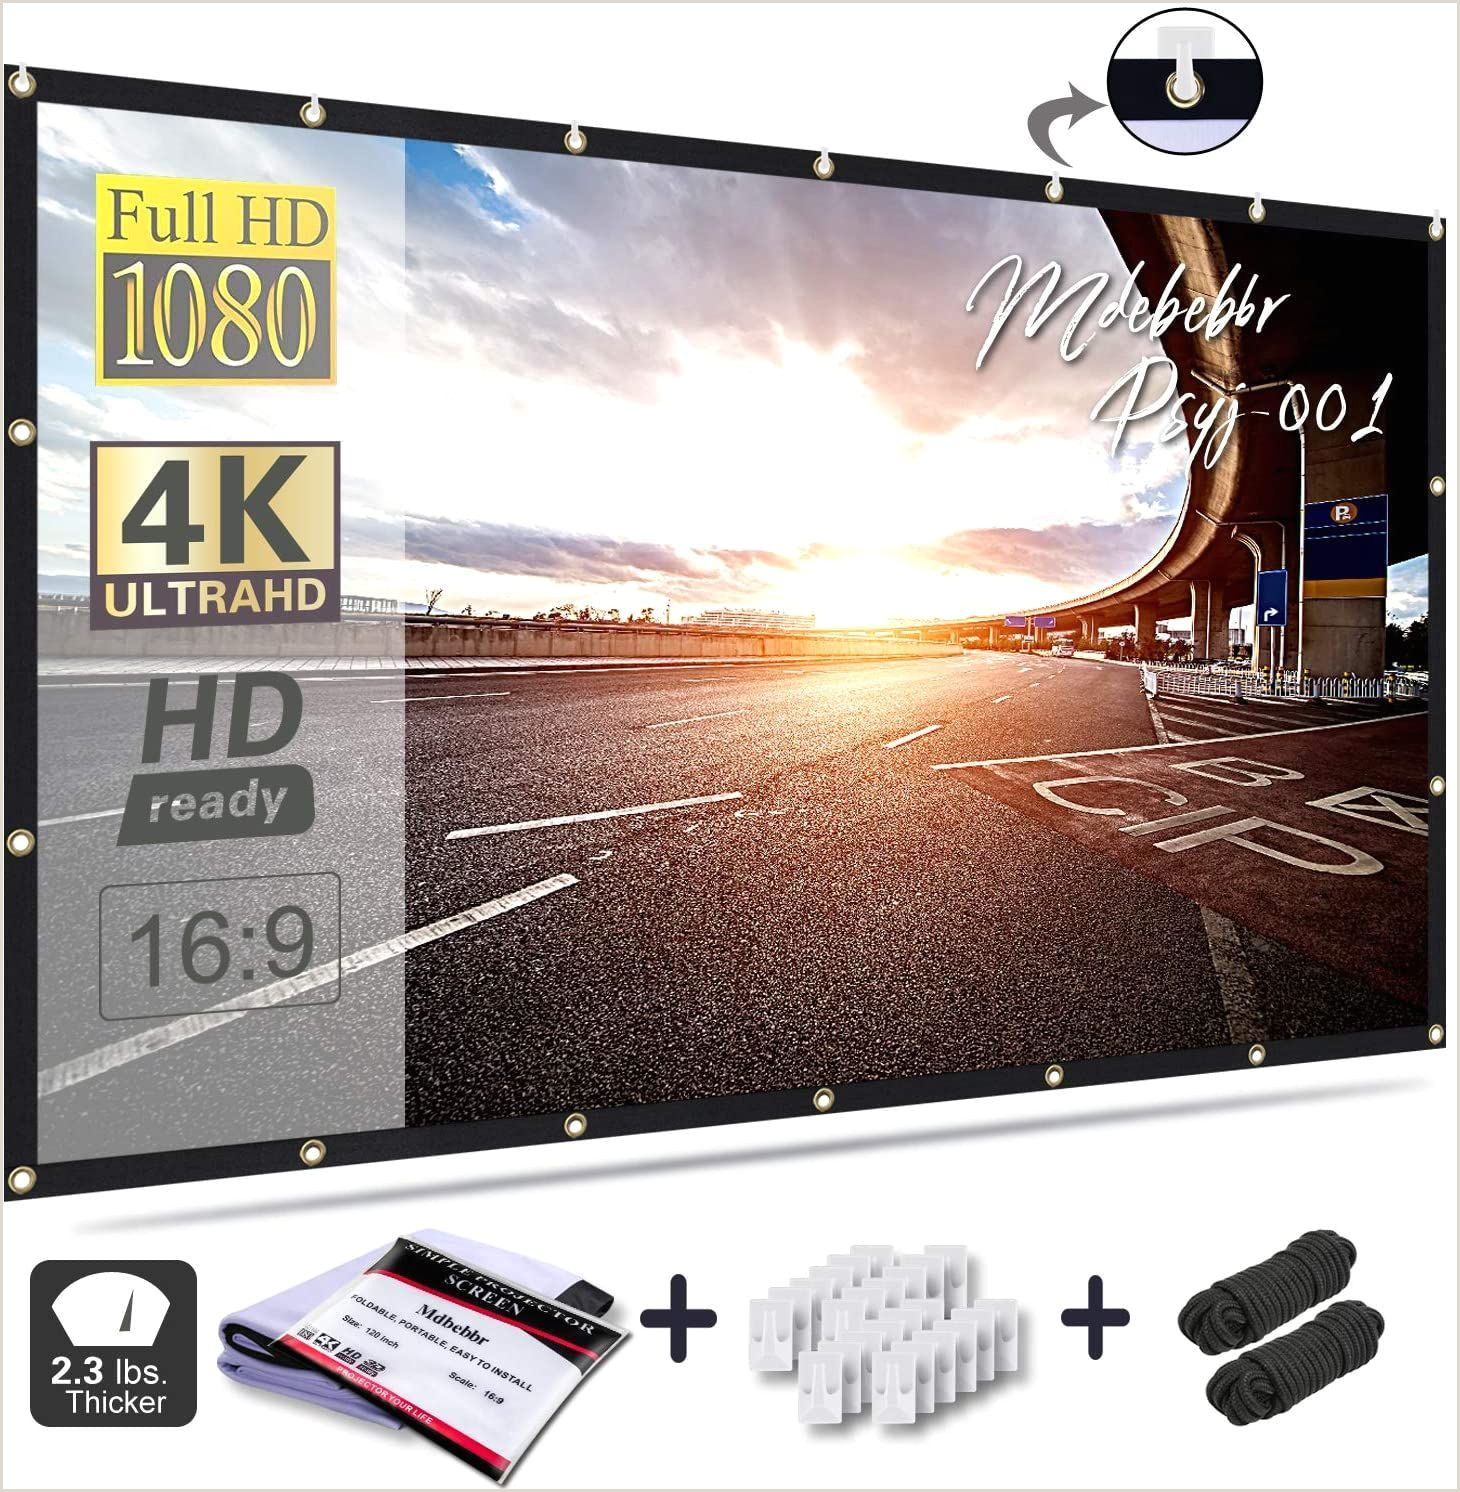 Banner Light Screen Enjoy A Happy Time Watching A Movie Or Ball Game With Your